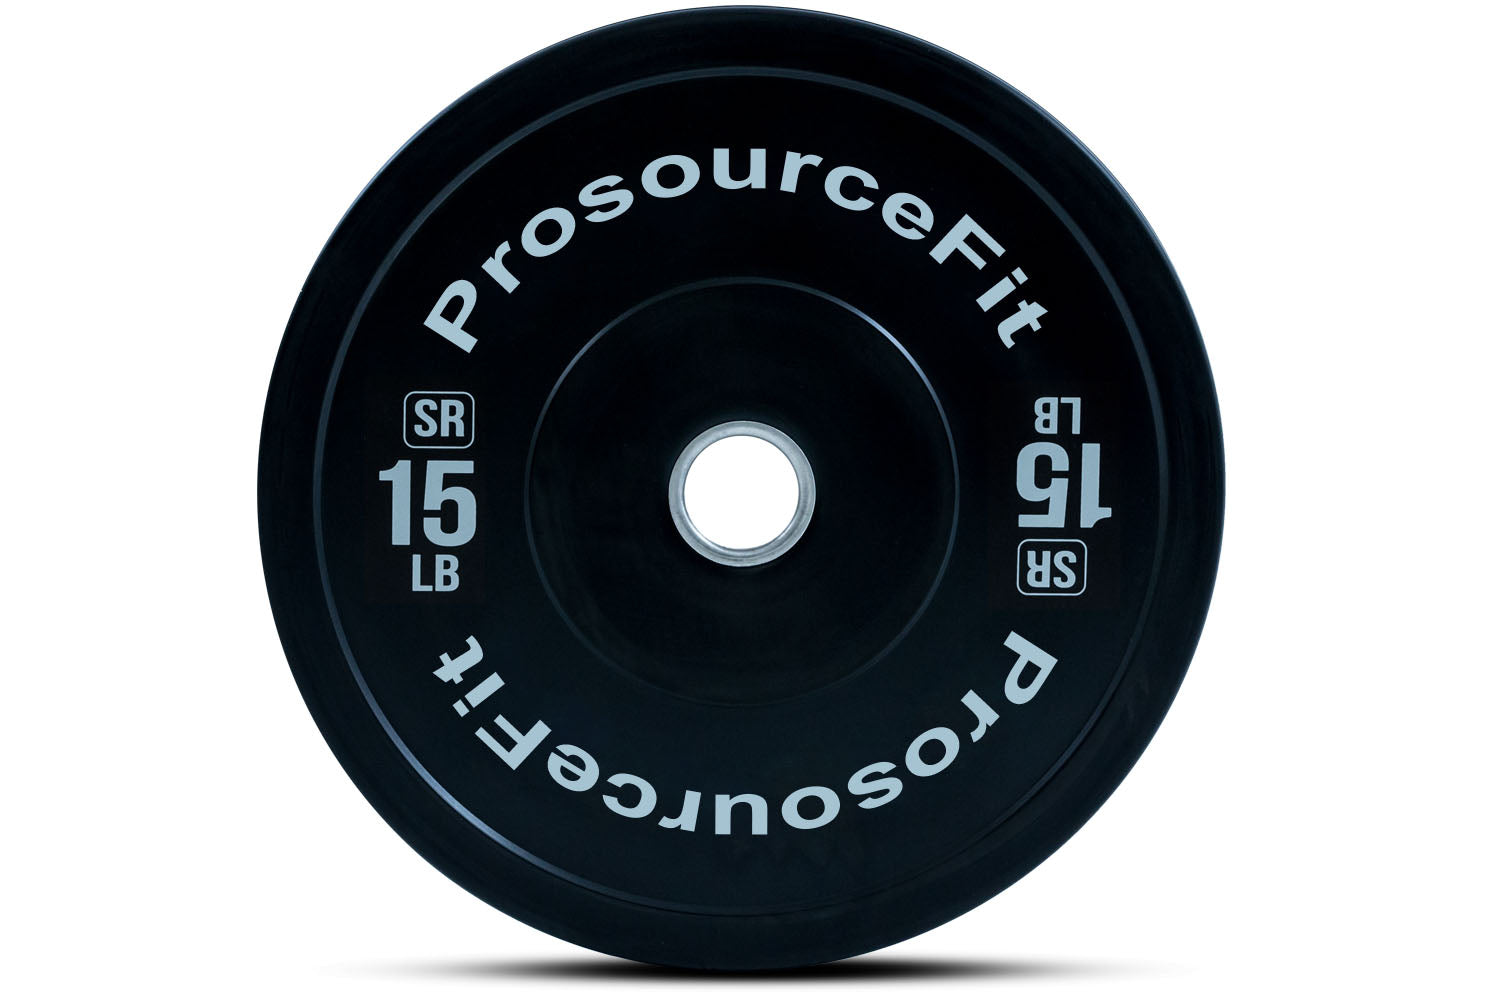 15 lb SR Bumper Plates (Set of 2)